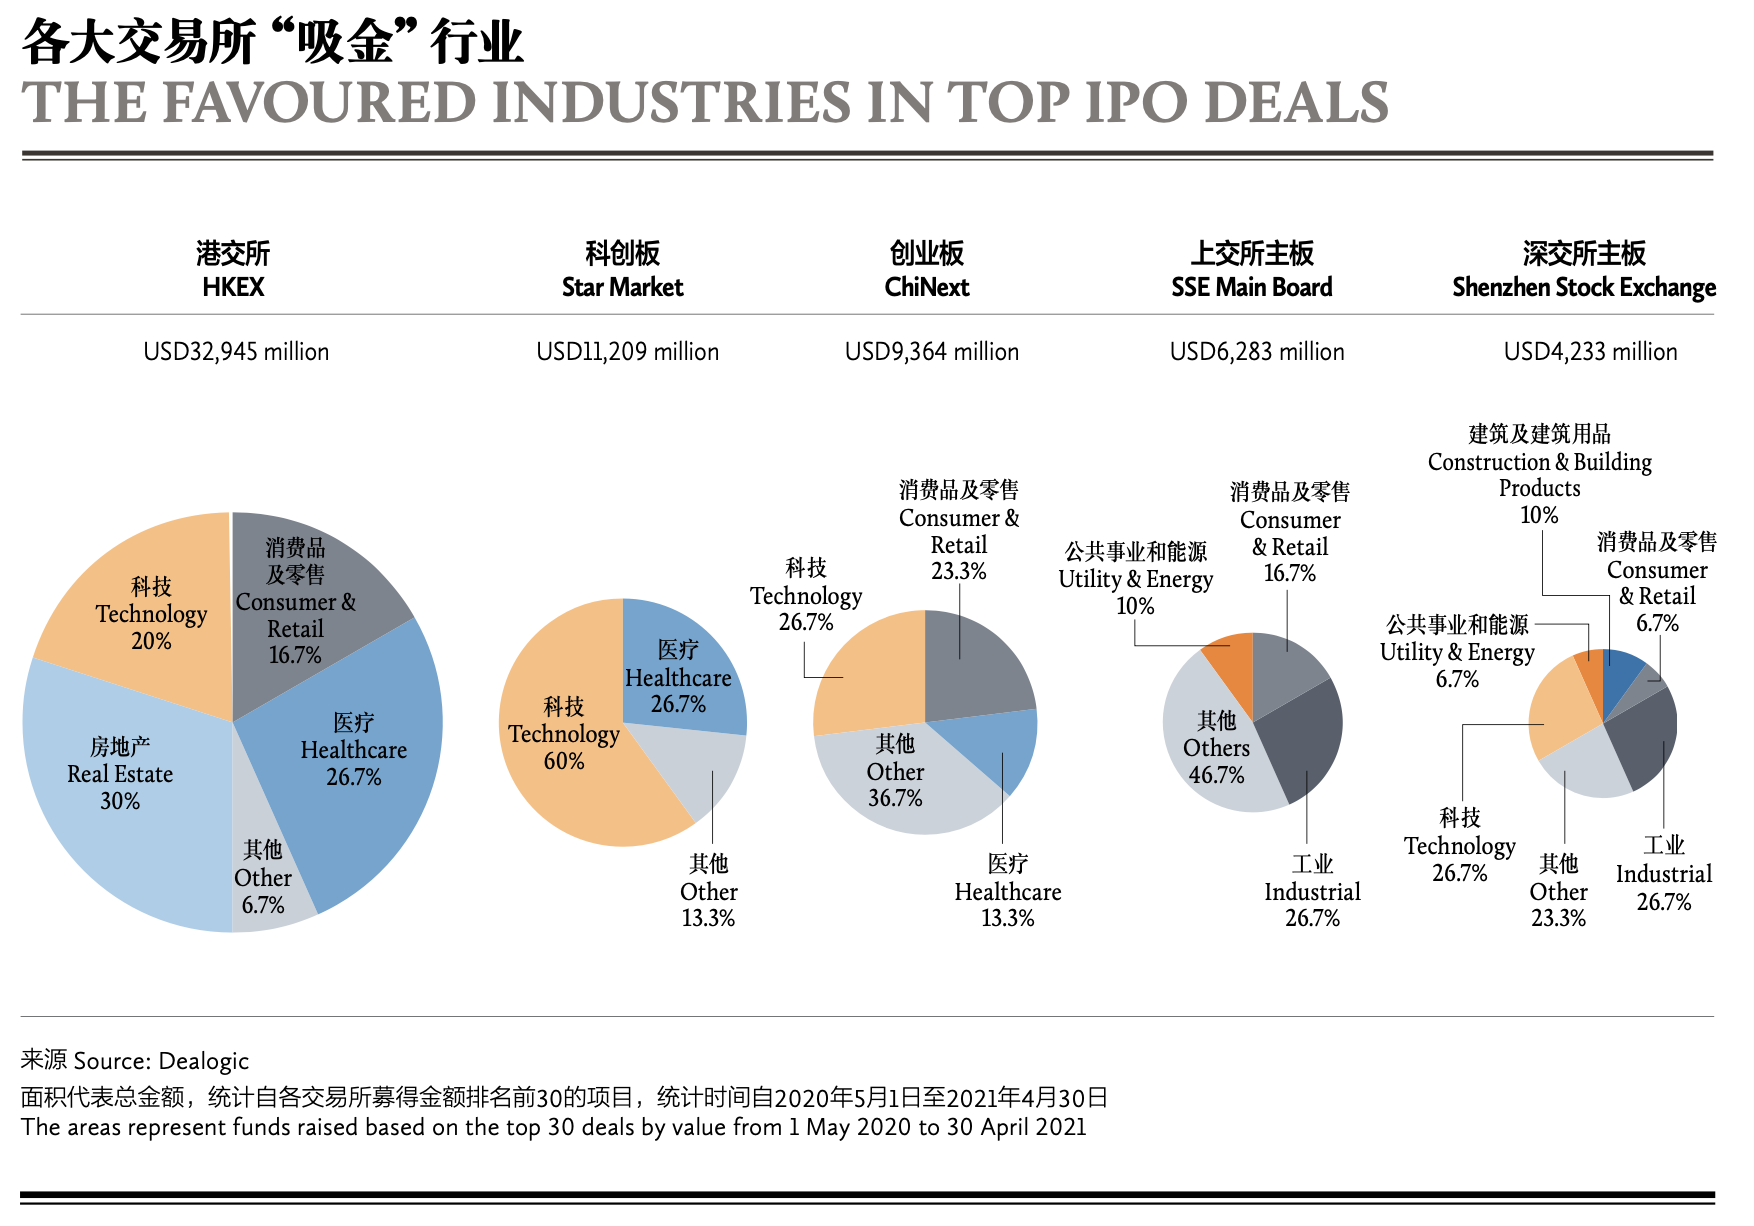 THE FAVOURED INDUSTRIES IN TOP IPO DEALS